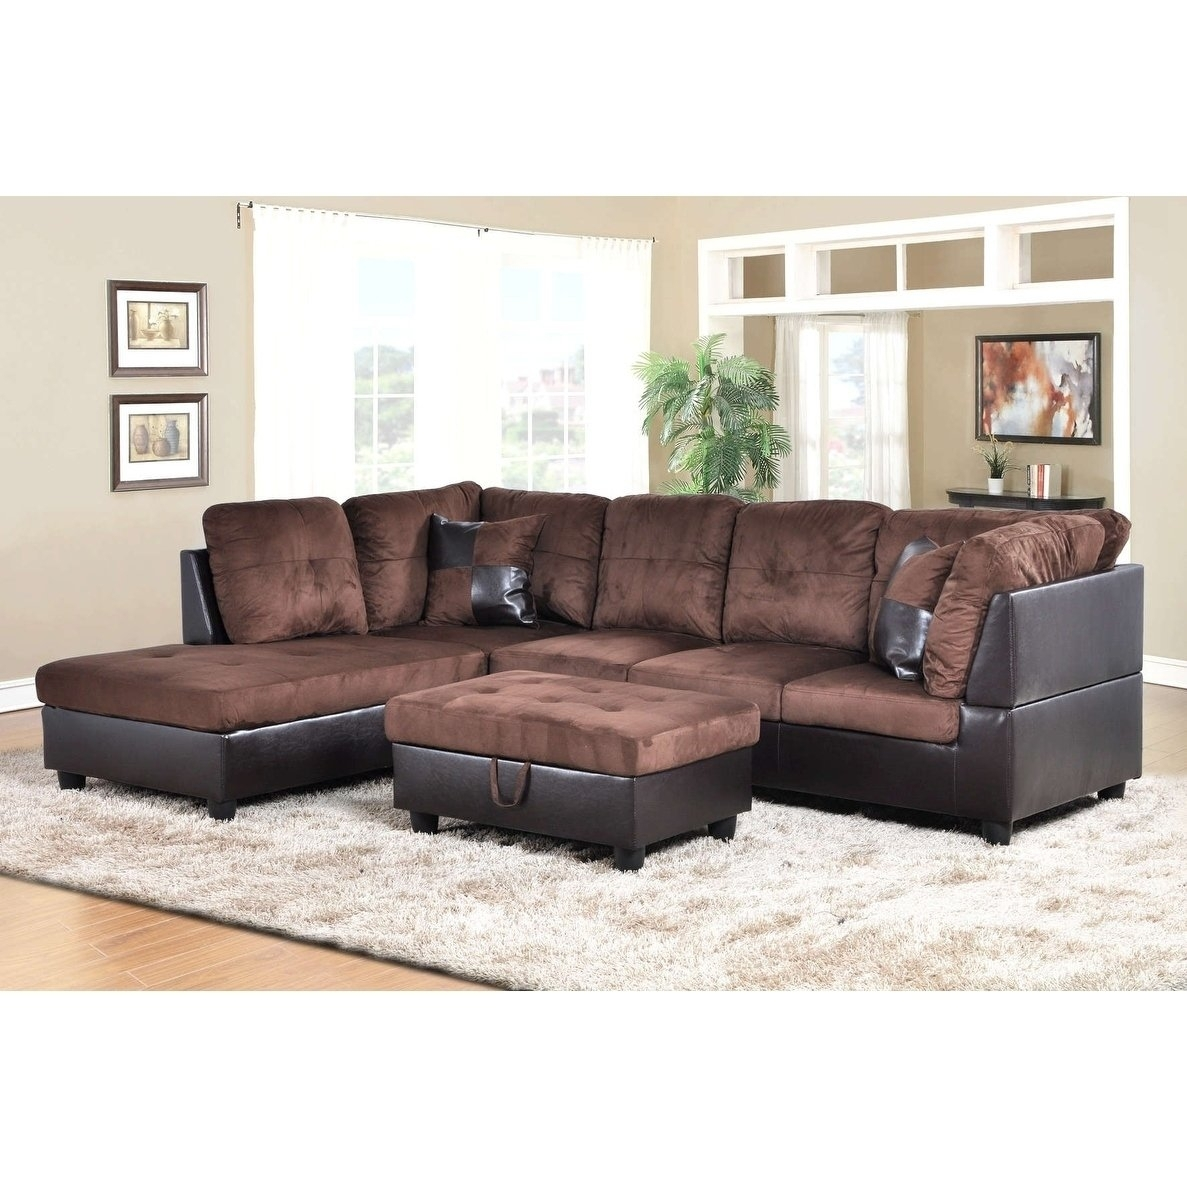 Shop Golden Coast Furniture 3 Piece Microfiber Leather Sofa Throughout Karen 3 Piece Sectionals (View 13 of 25)